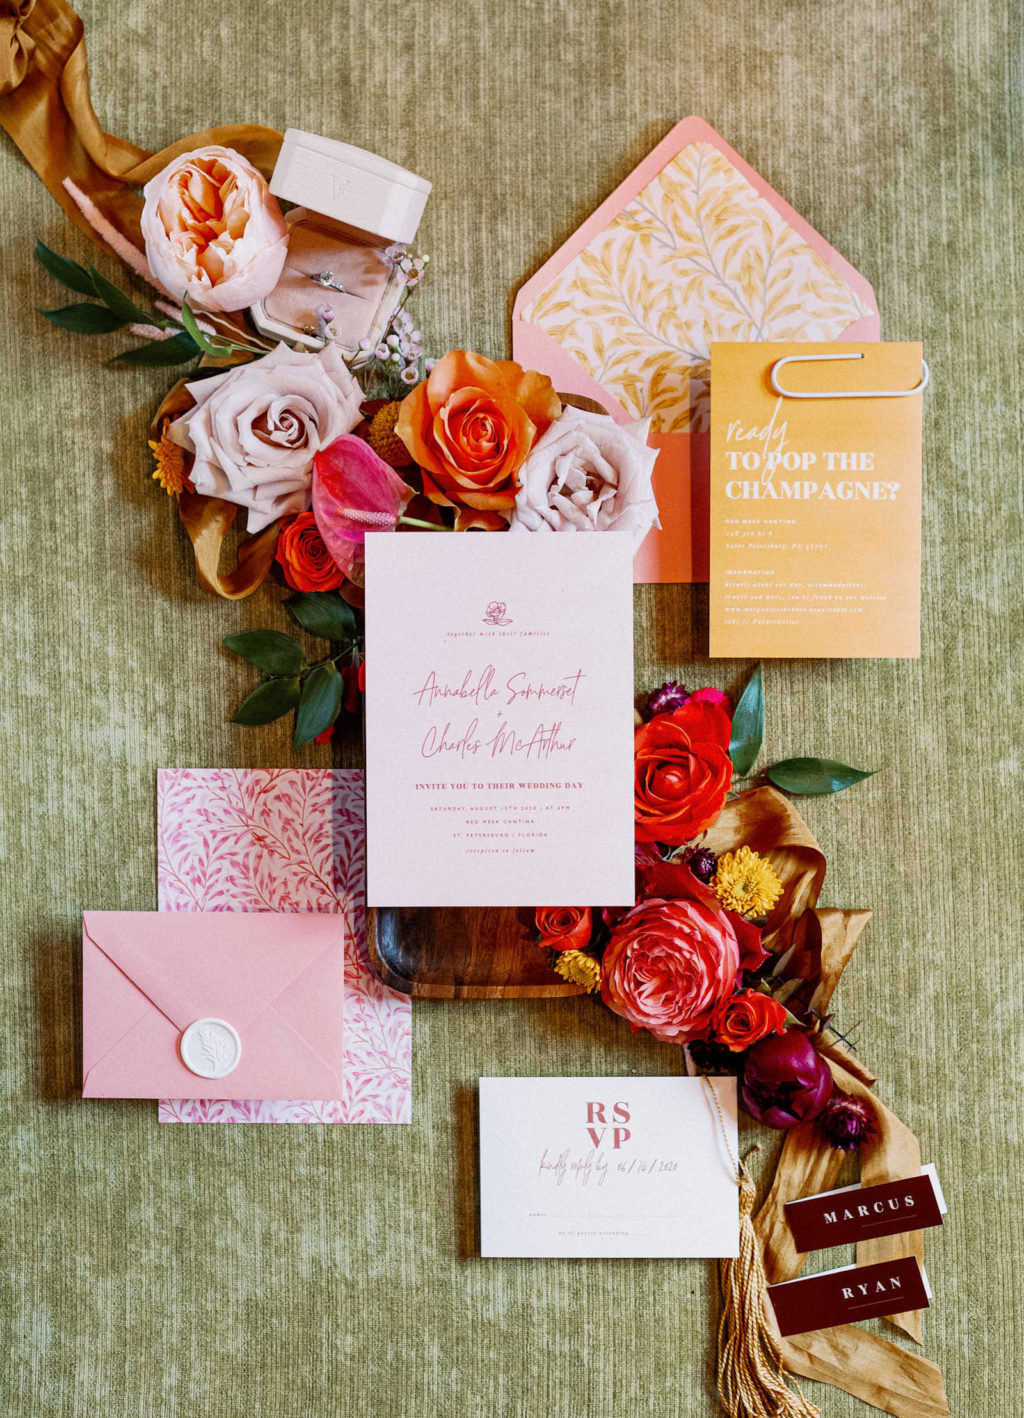 Whimsical Colorful Pink and Orange Wedding Invitation Suite   Tampa Bay Wedding Photographer Dewitt for Love